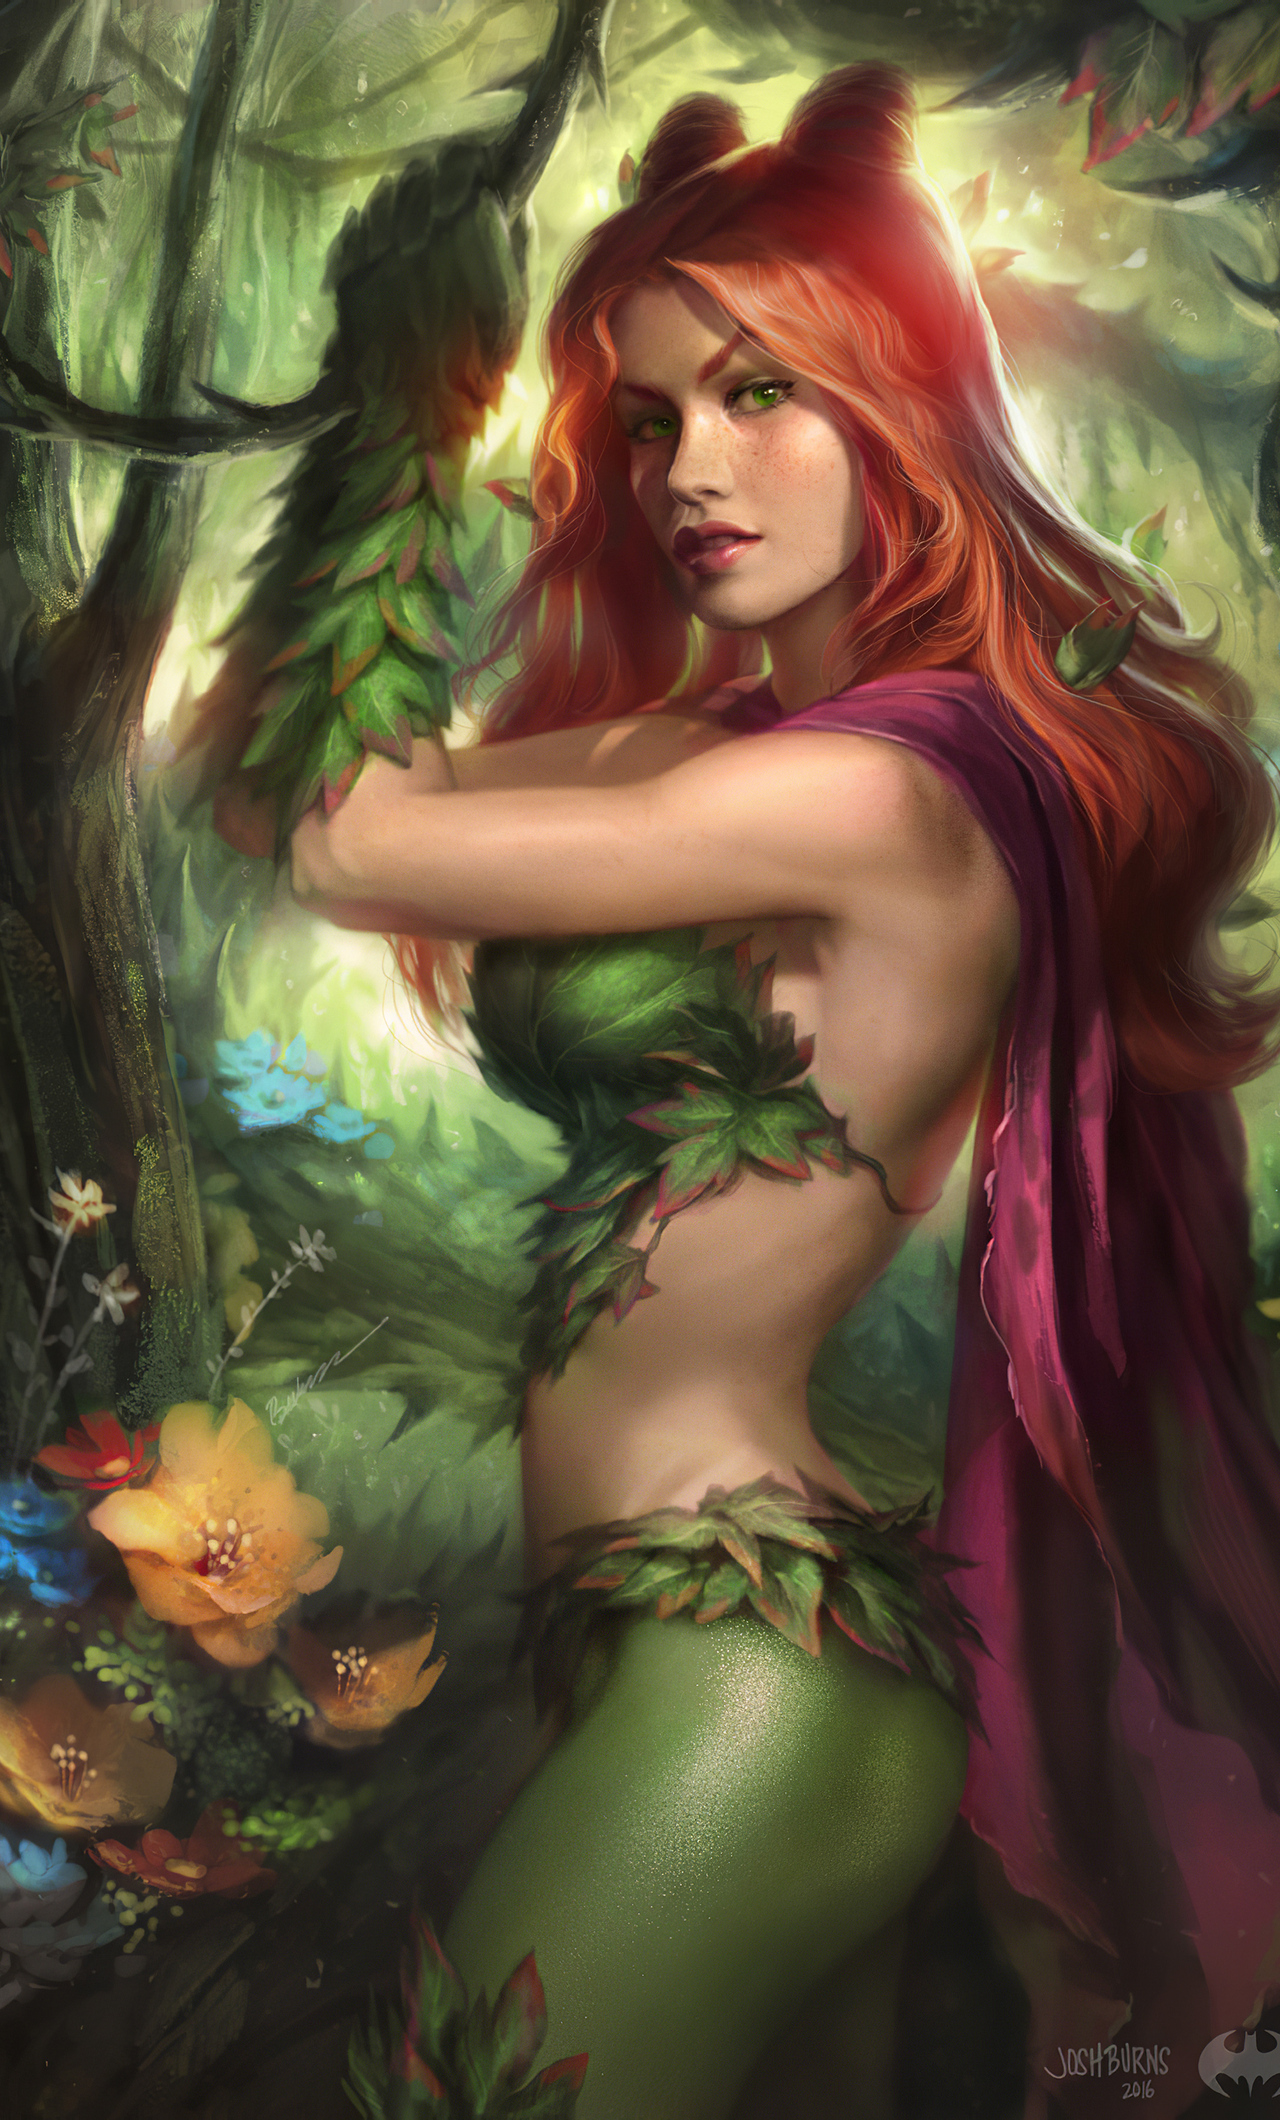 1280x2120 poison ivy artwork iphone 6 hd 4k wallpapers images backgrounds photos and pictures 1280x2120 poison ivy artwork iphone 6